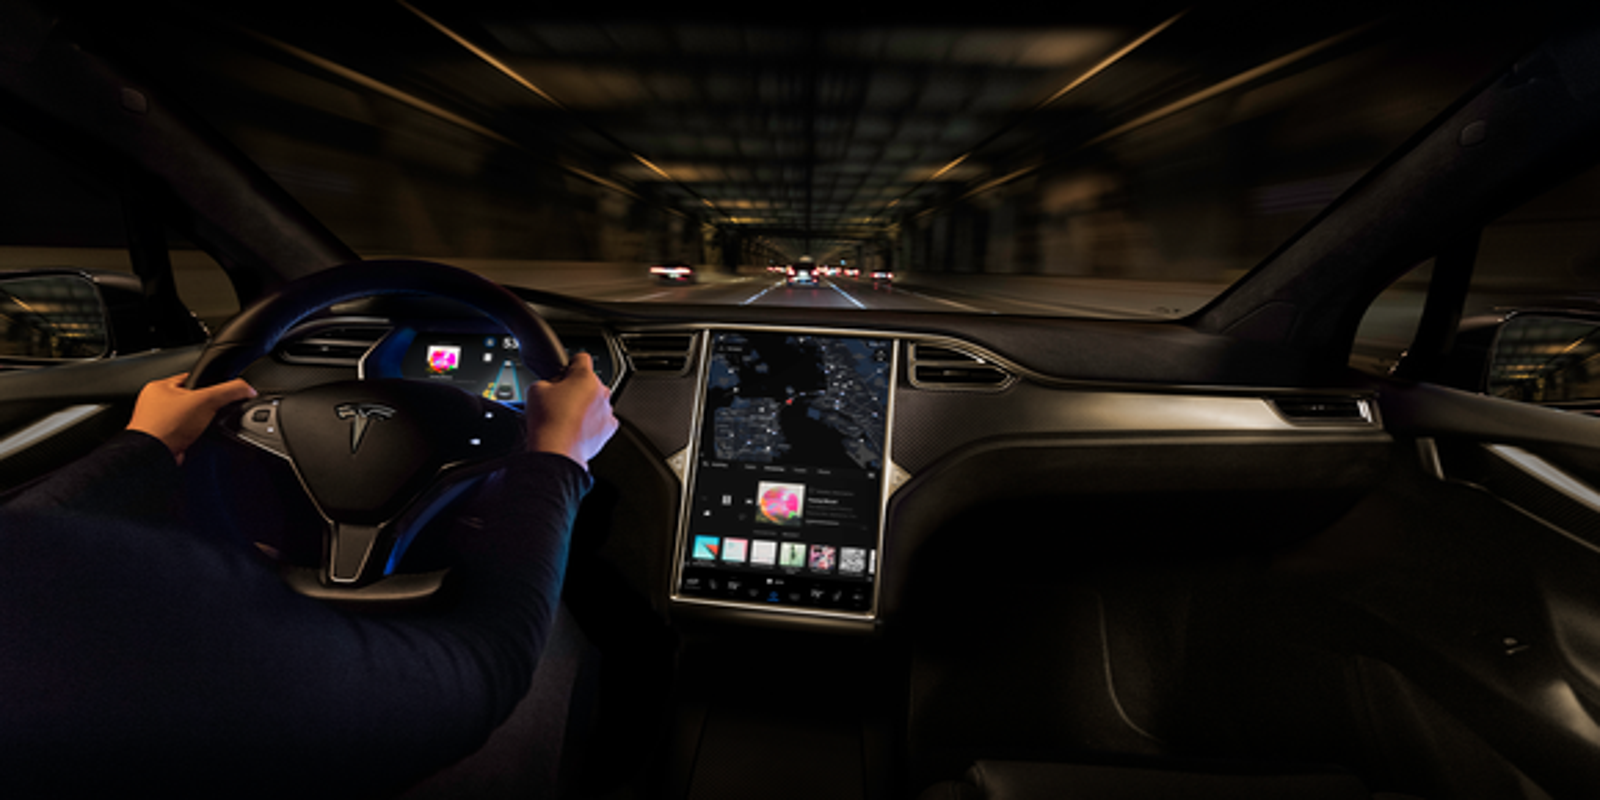 Elon Musk says Tesla's full self-driving Autopilot is coming soon and it's 'clearly going to work'